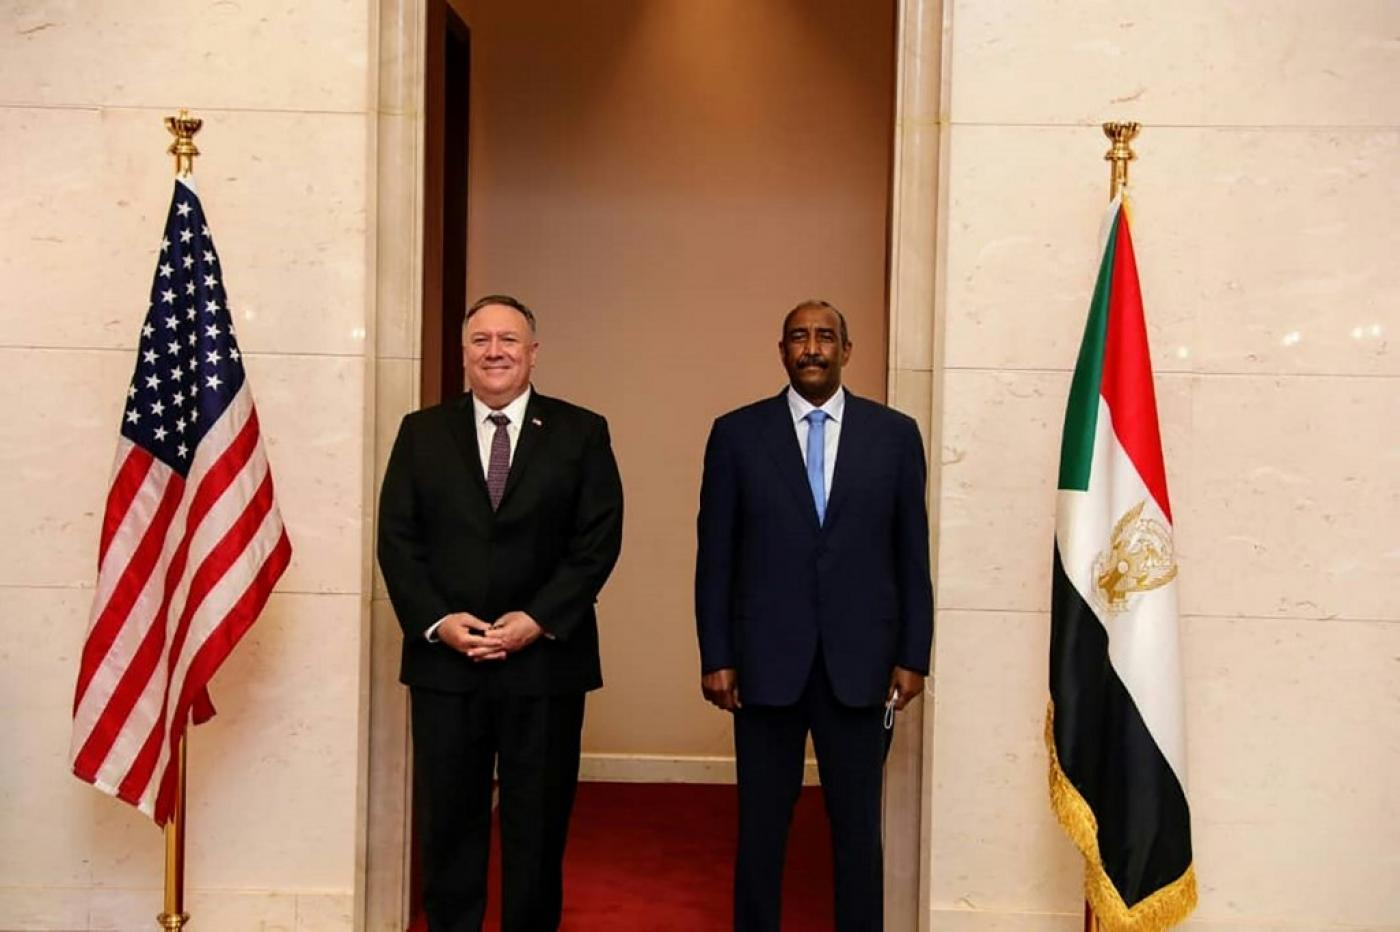 Sudan PM ready for Israel ties if parliament approves